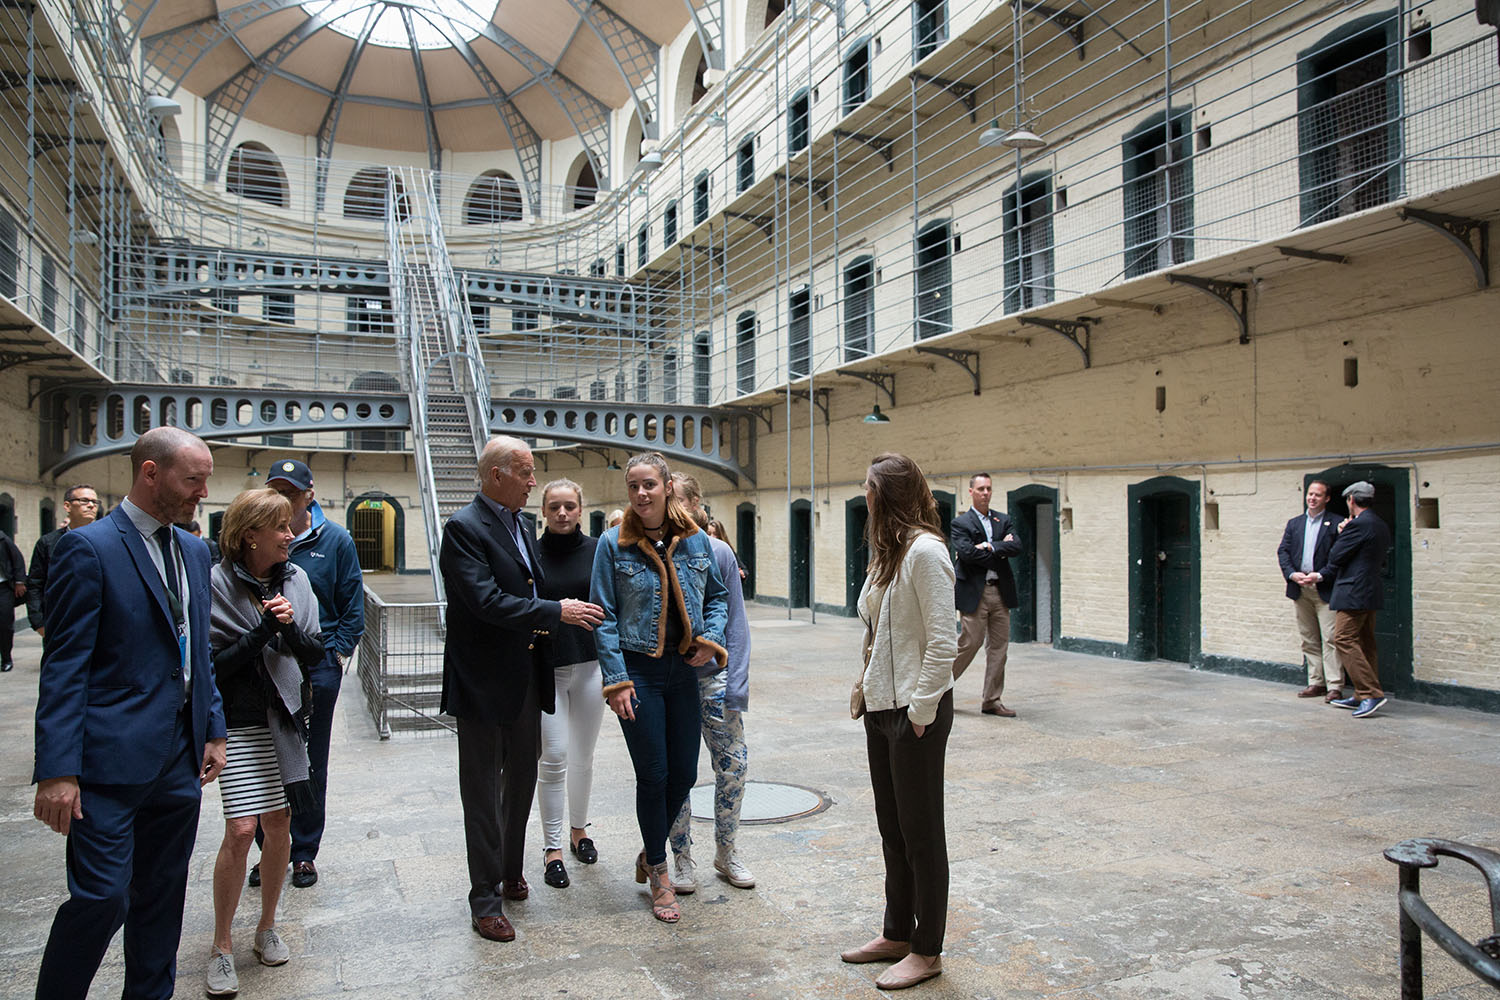 Vice President Joe Biden tours the Kilmainham Prison, where many of those who participated in the Easter Rising in 1916 were held, in Dublin, Ireland, June 23, 2016. (Official White House Photo by David Lienemann)